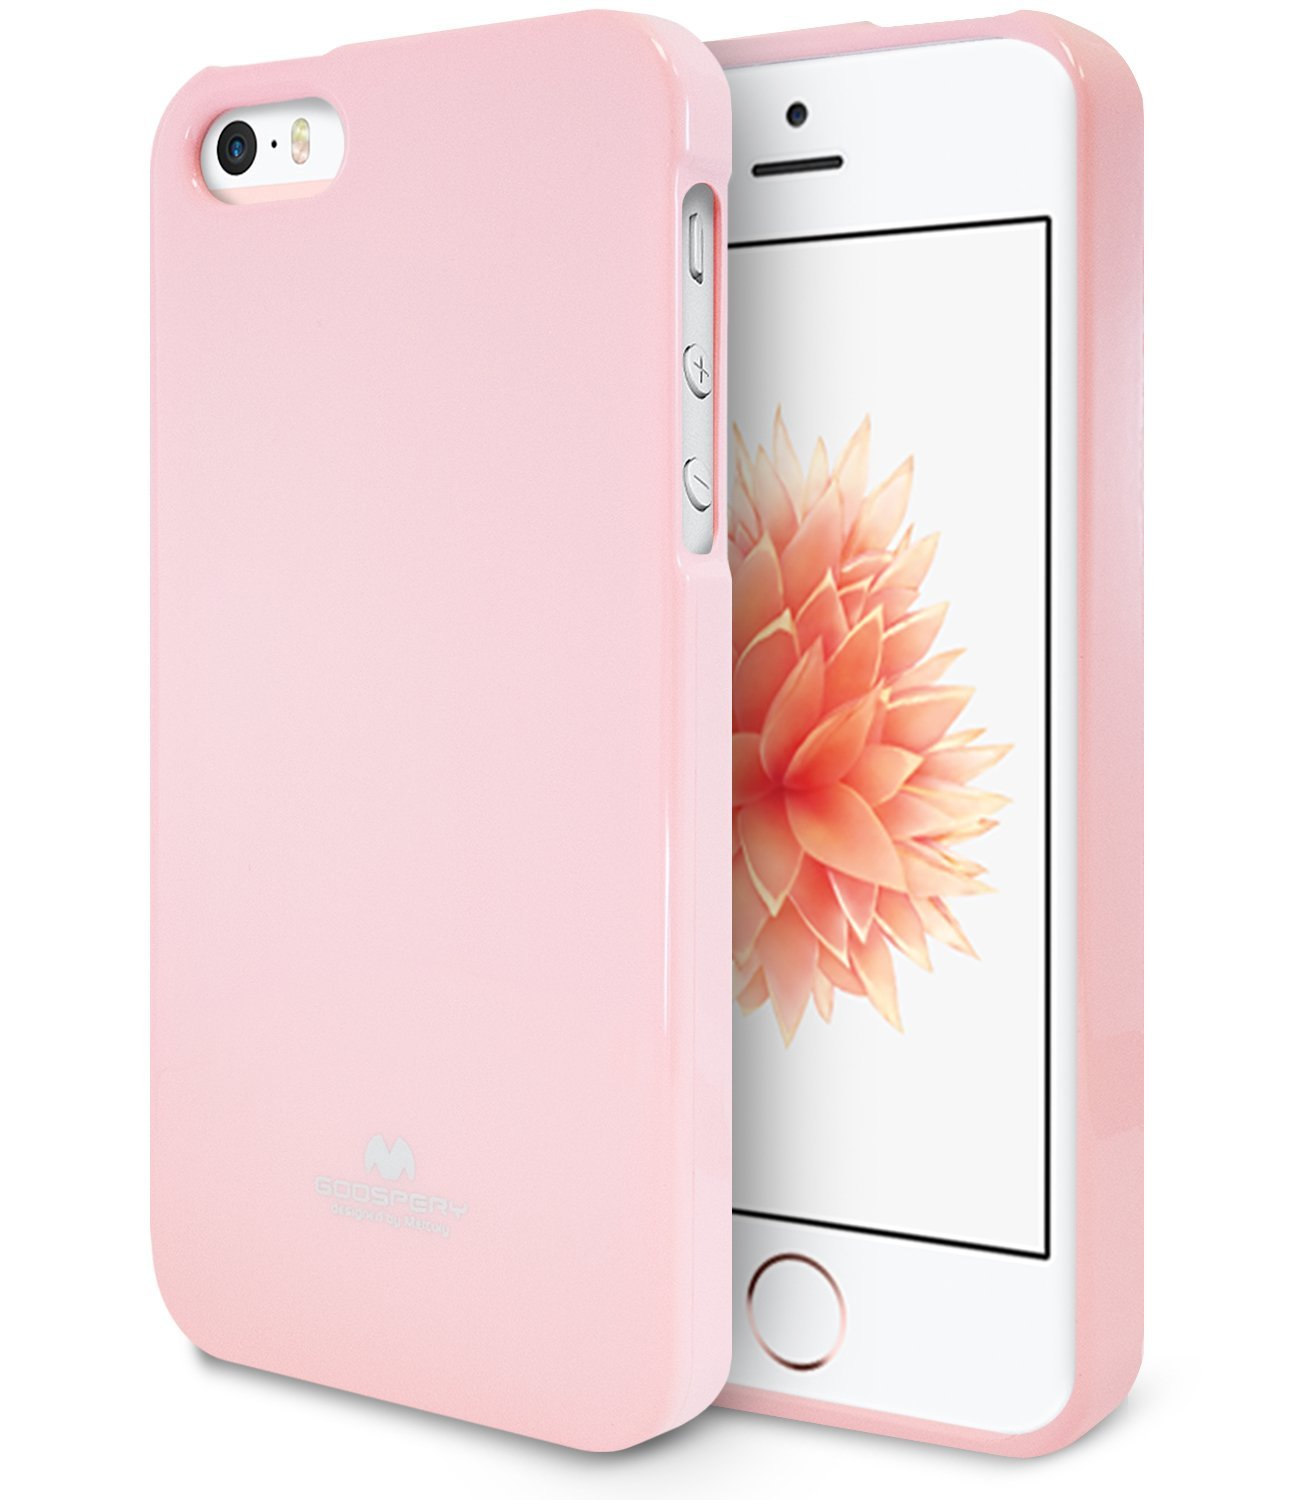 Pouzdro / kryt pro Apple iPhone 5 / 5S / SE - Mercury, Jelly Case Pink